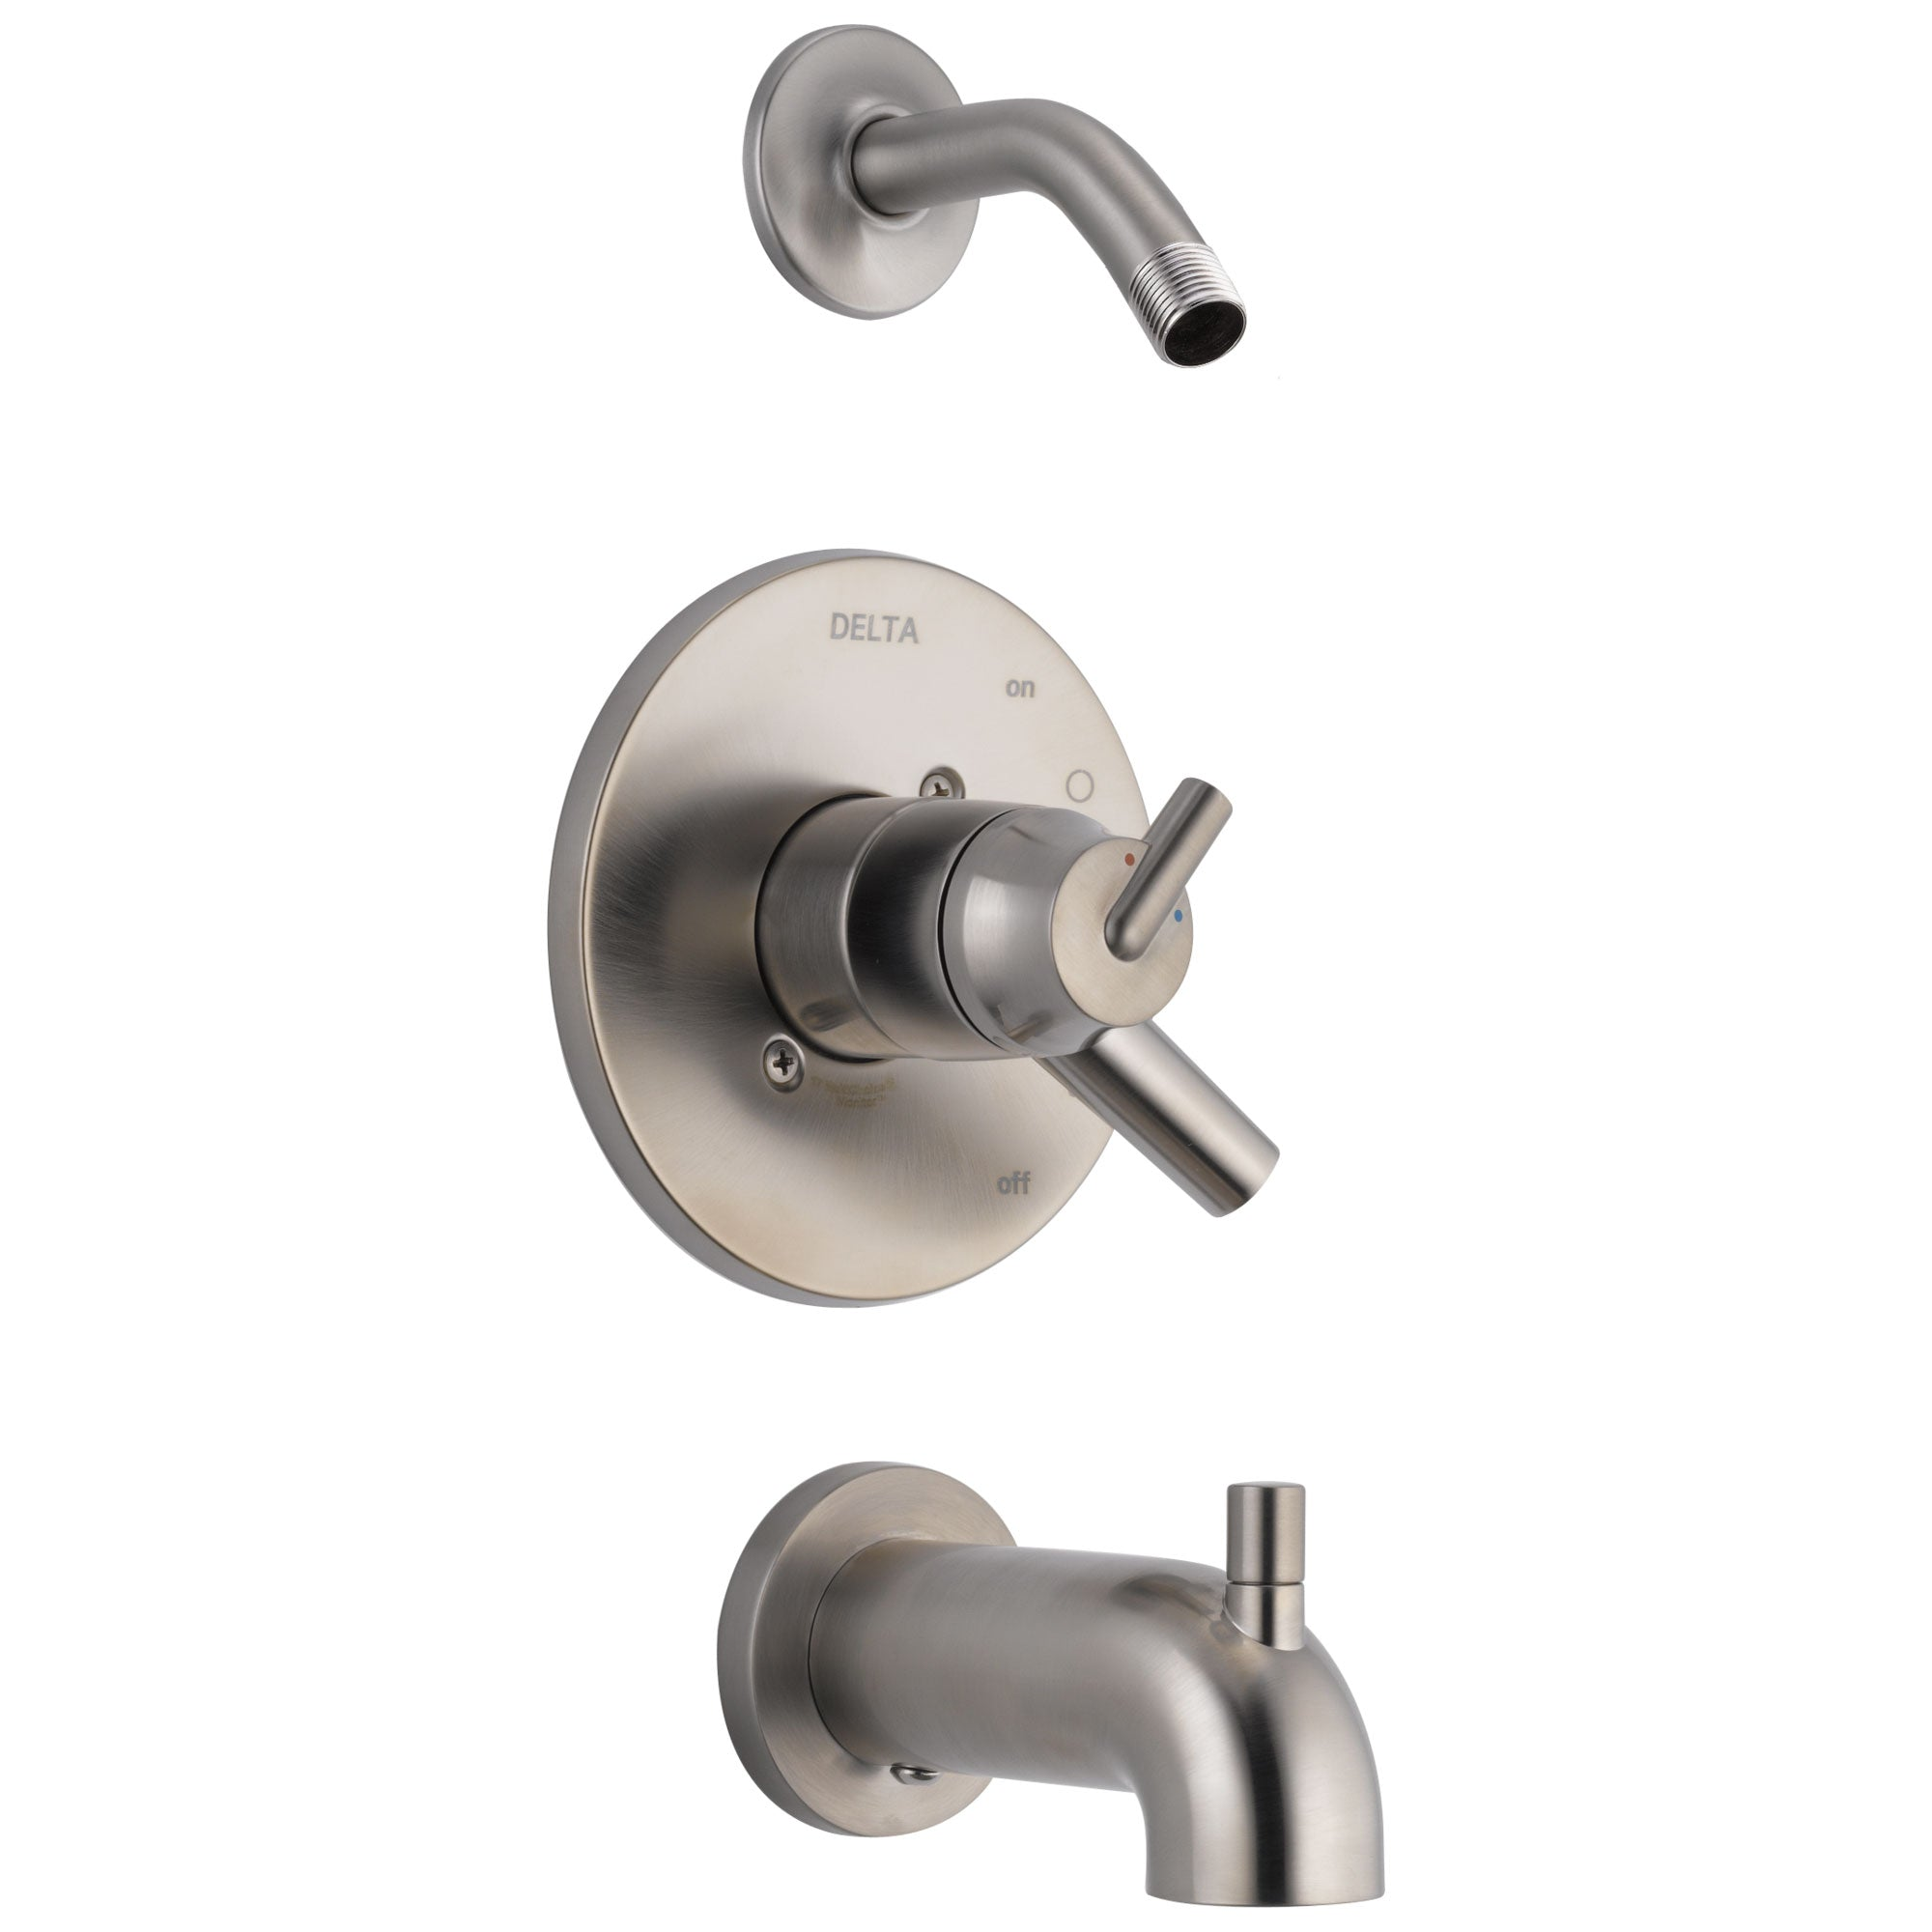 Delta Trinsic Collection Stainless Steel Finish Dual Temp and Volume Control Tub and Shower Combo Less Shower Head Includes Rough Valve with Stops D2300V